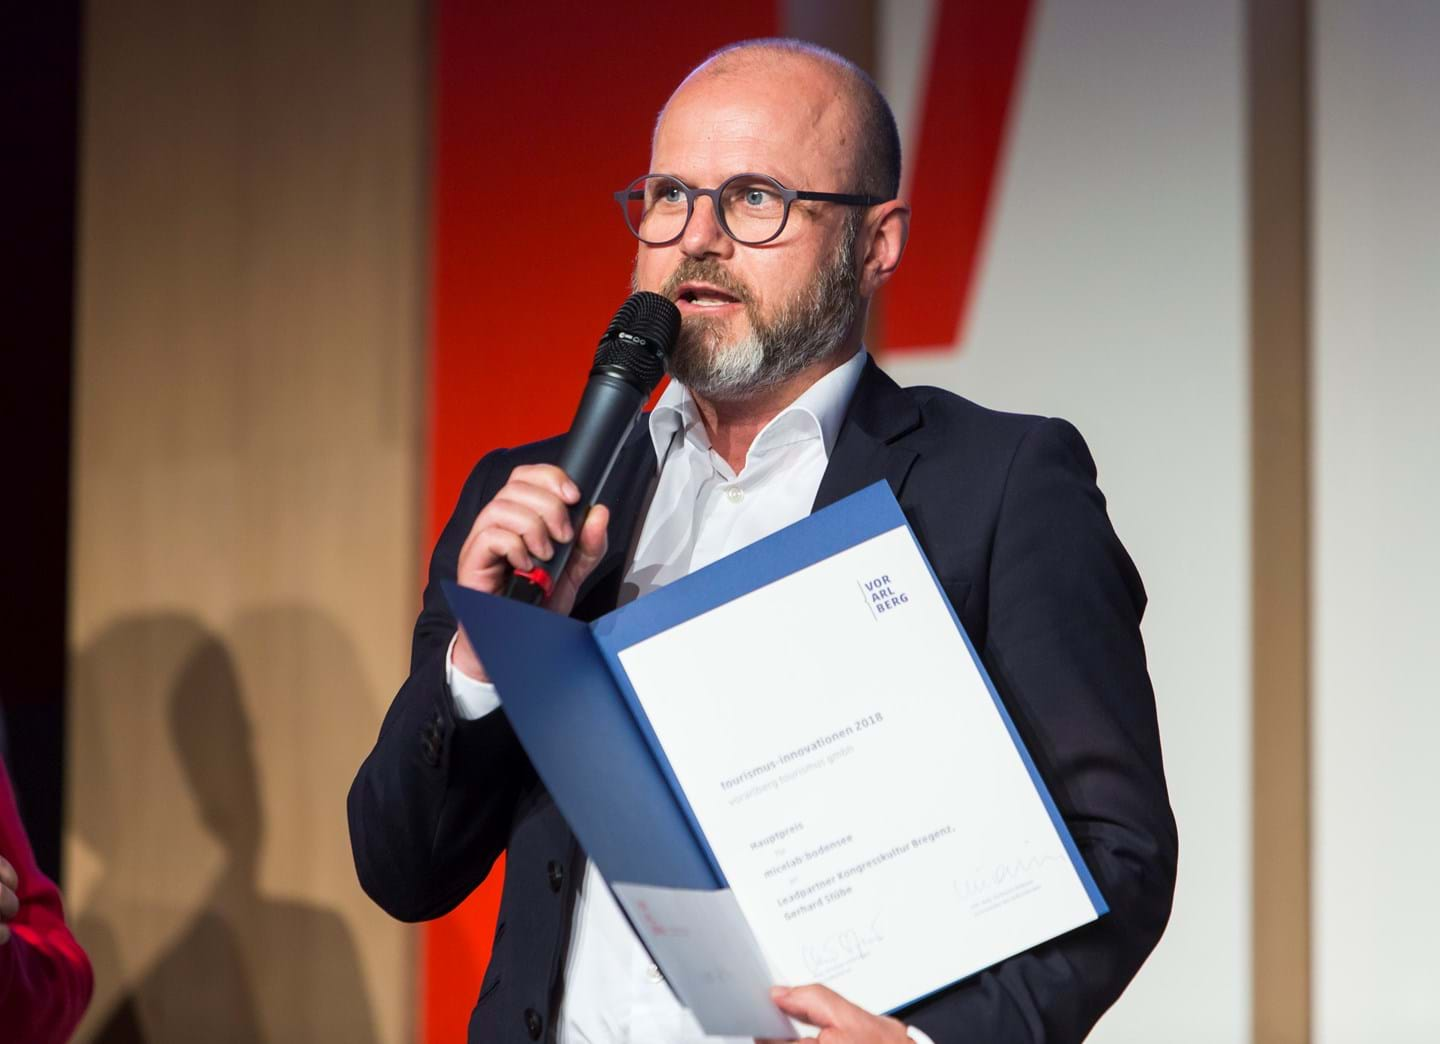 micelab:bodensee wins main prize for tourism innovation in 2018 in Vorarlberg